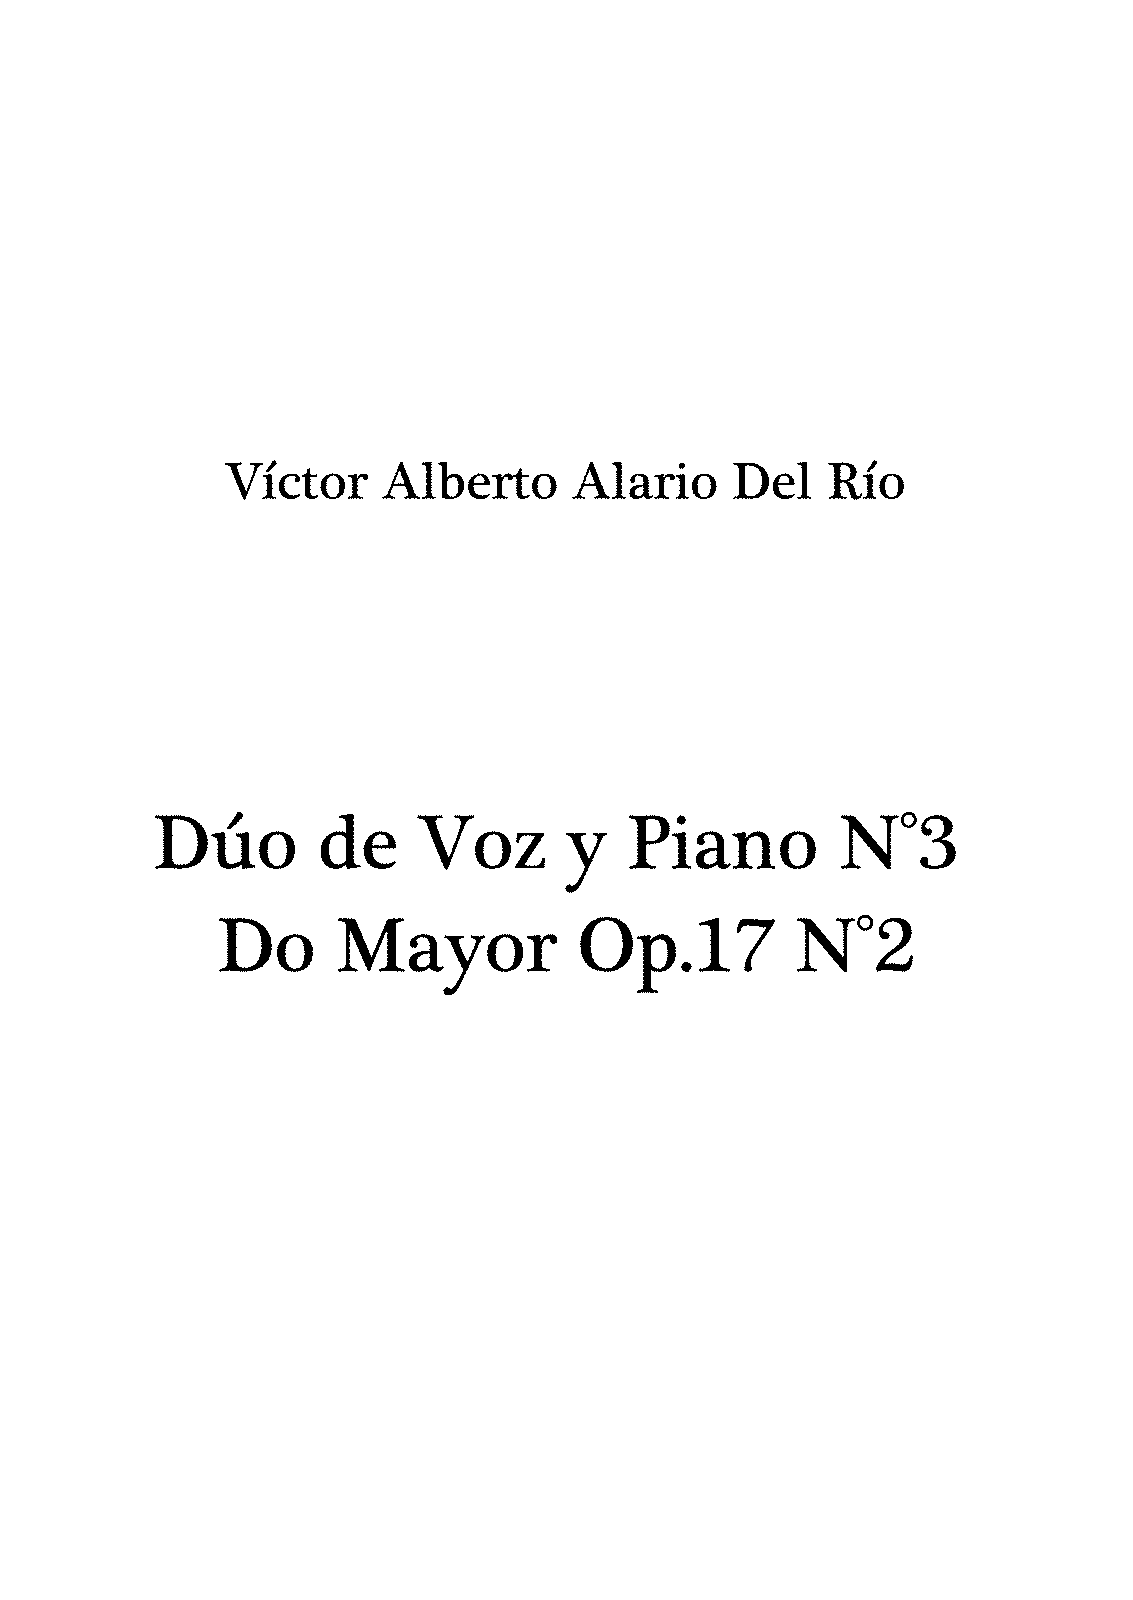 PMLP712897-Dúo de Voz y Piano N°3 Do Mayor Op.17 N°2.pdf